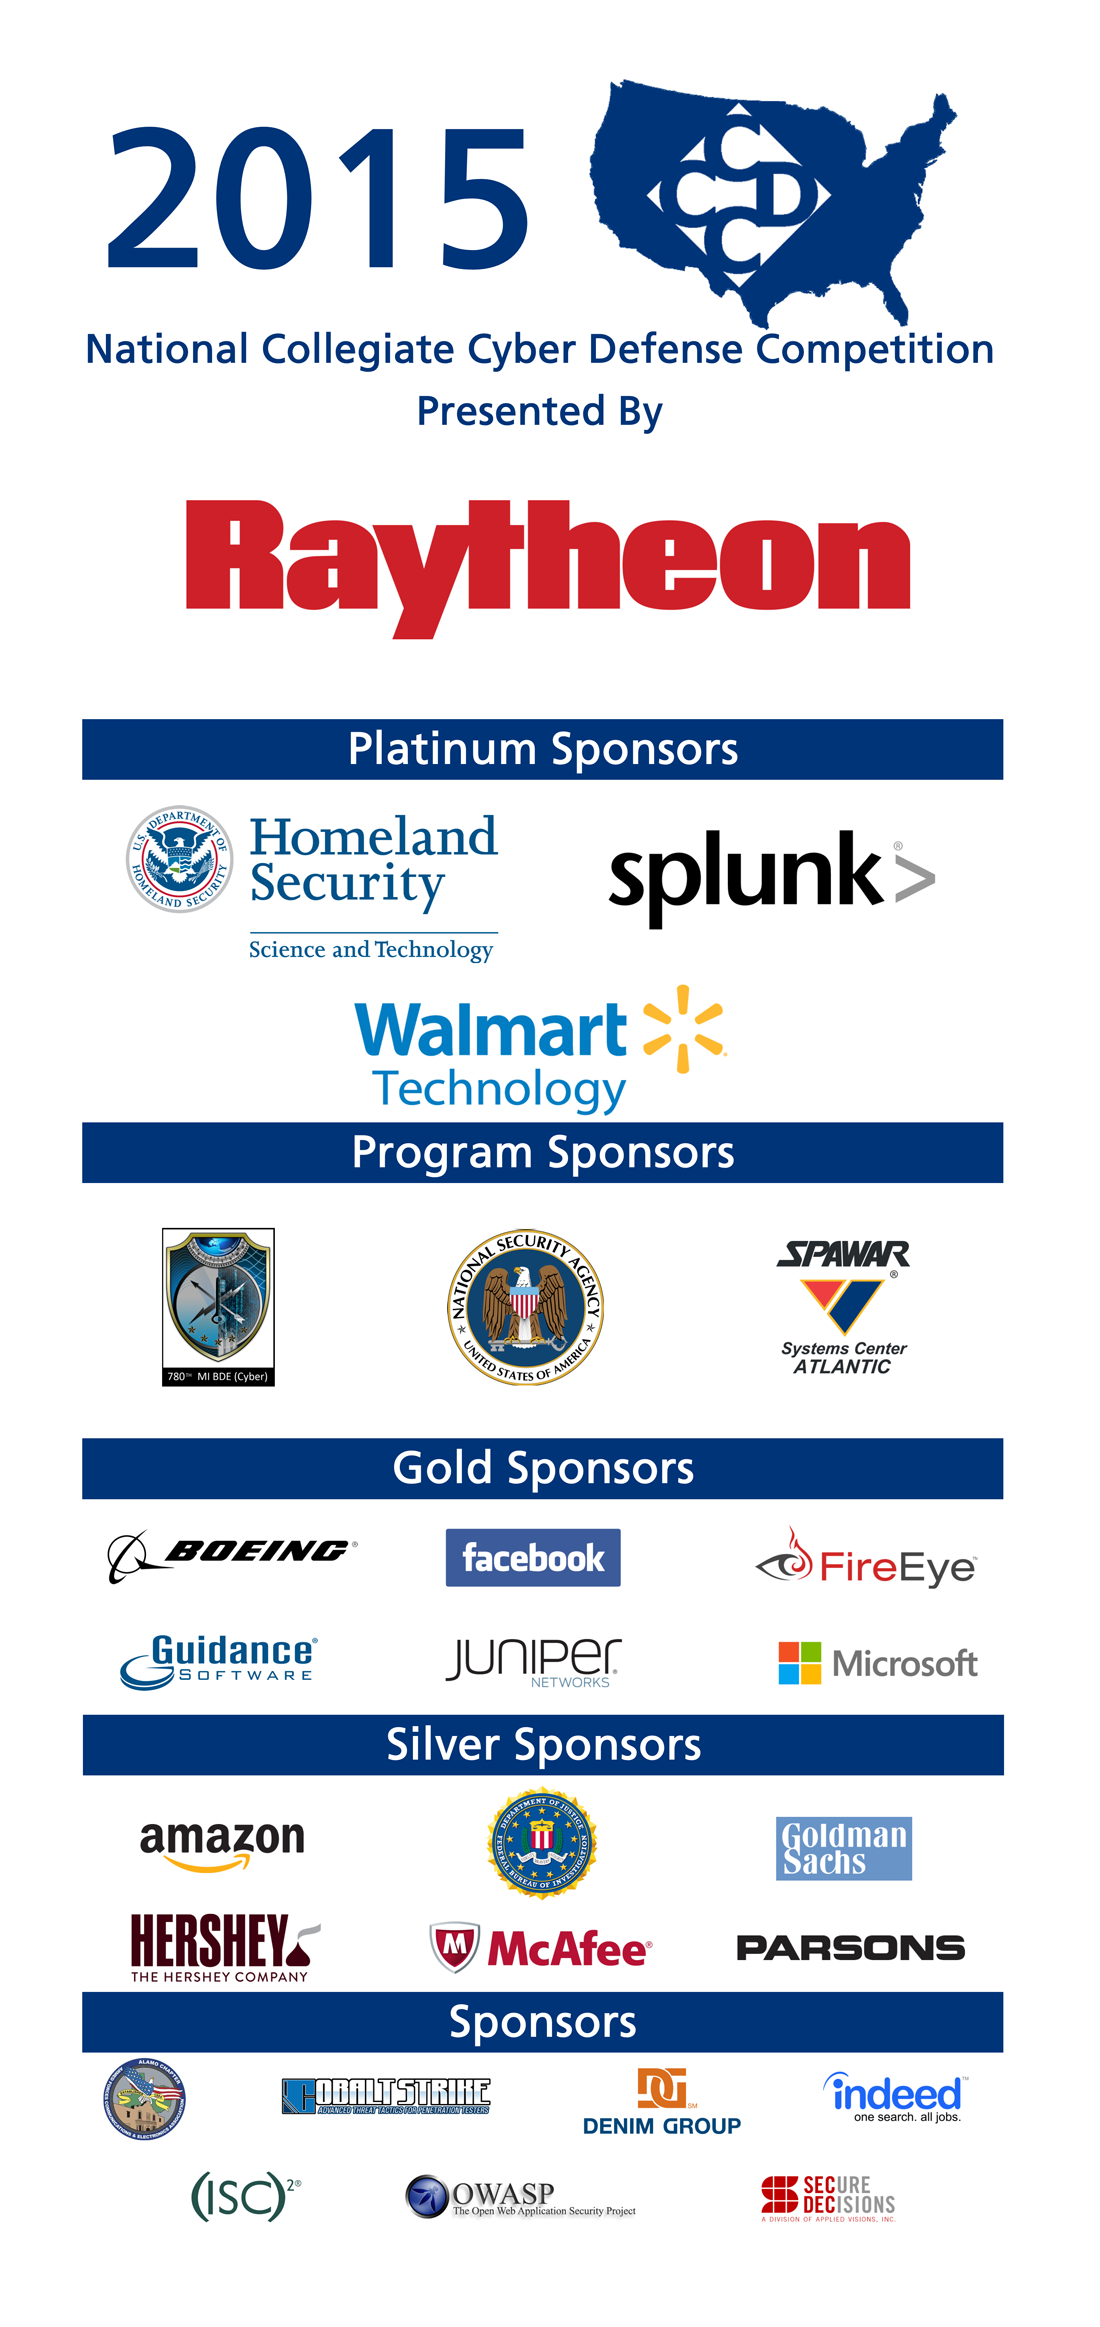 2015 National NCCDC Sponsors